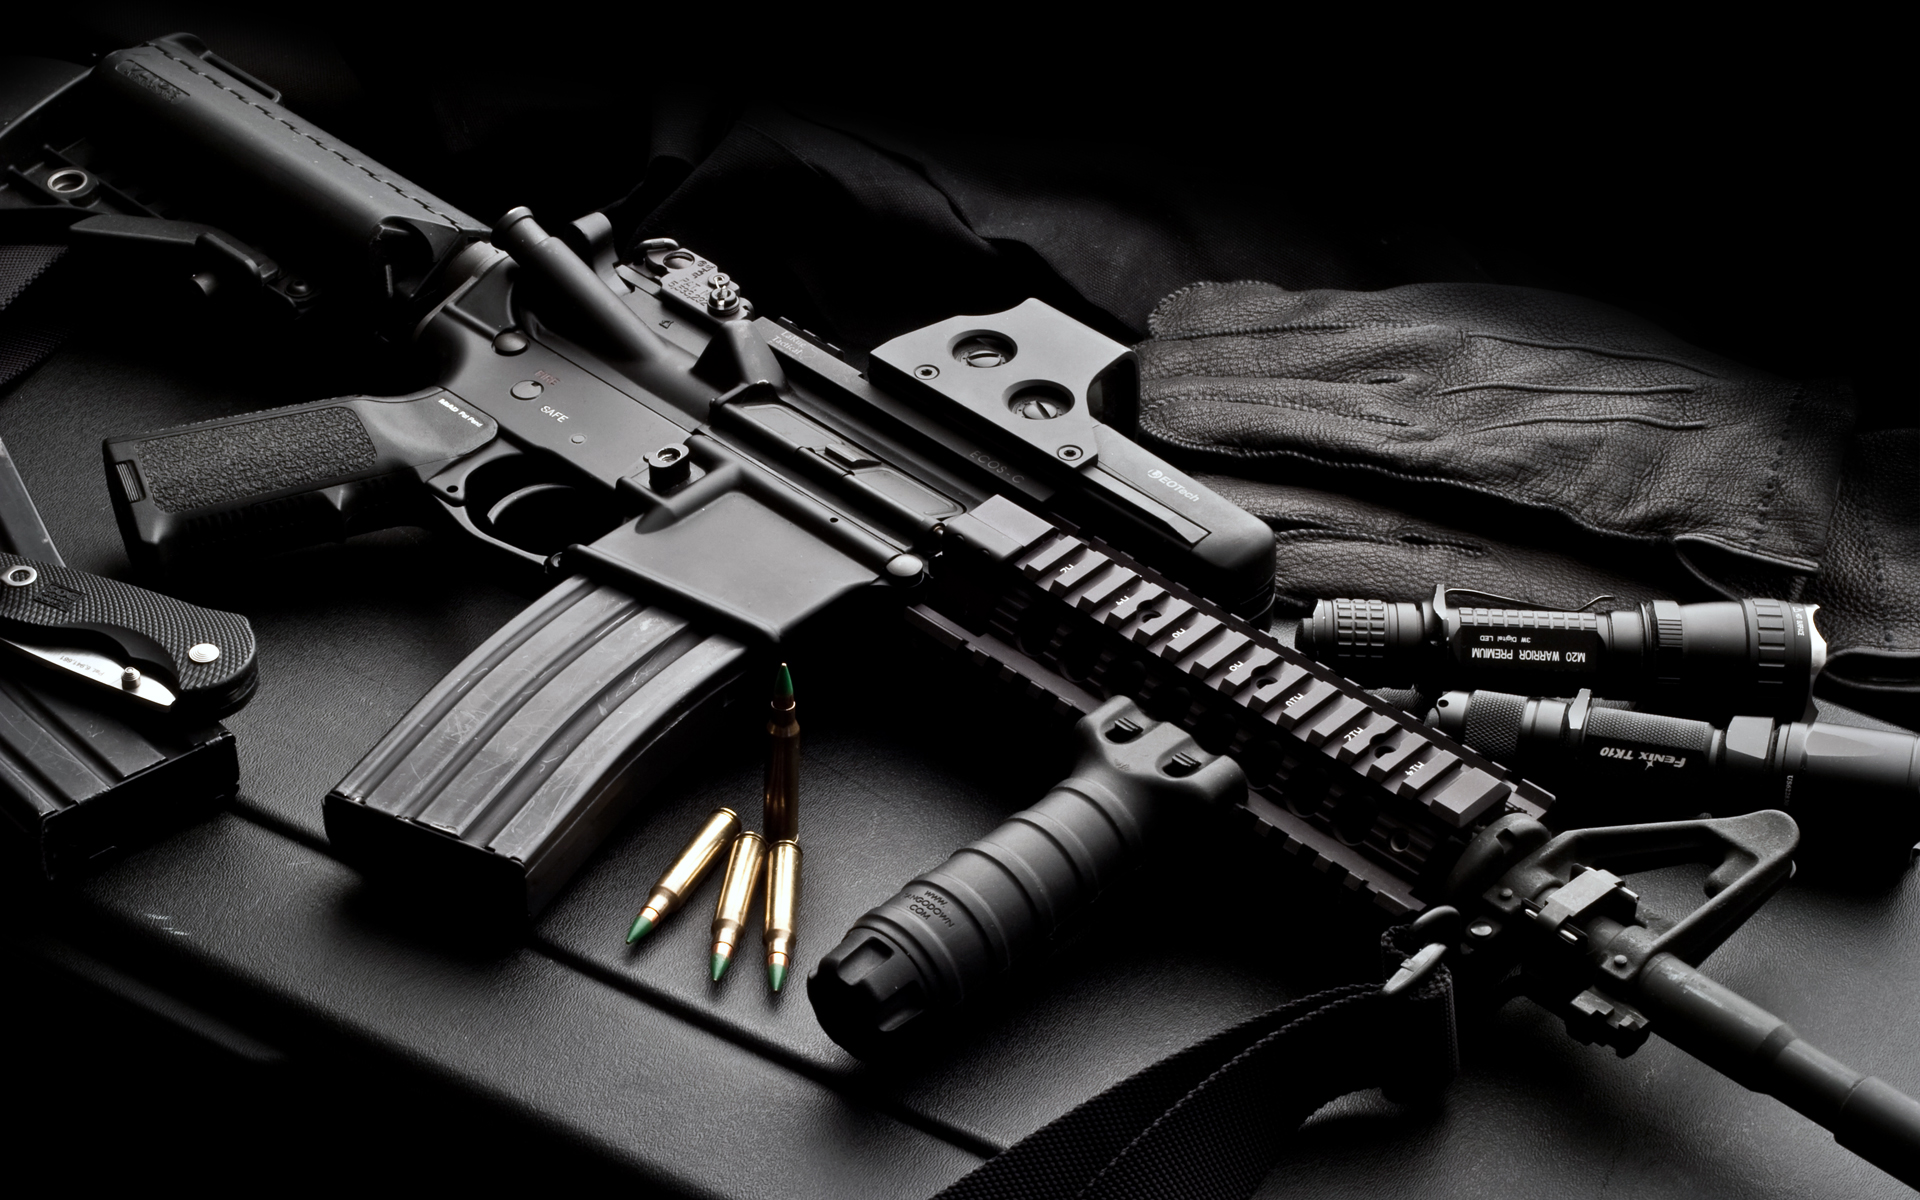 Colt AR 15 Full HD Wallpaper And Background Image